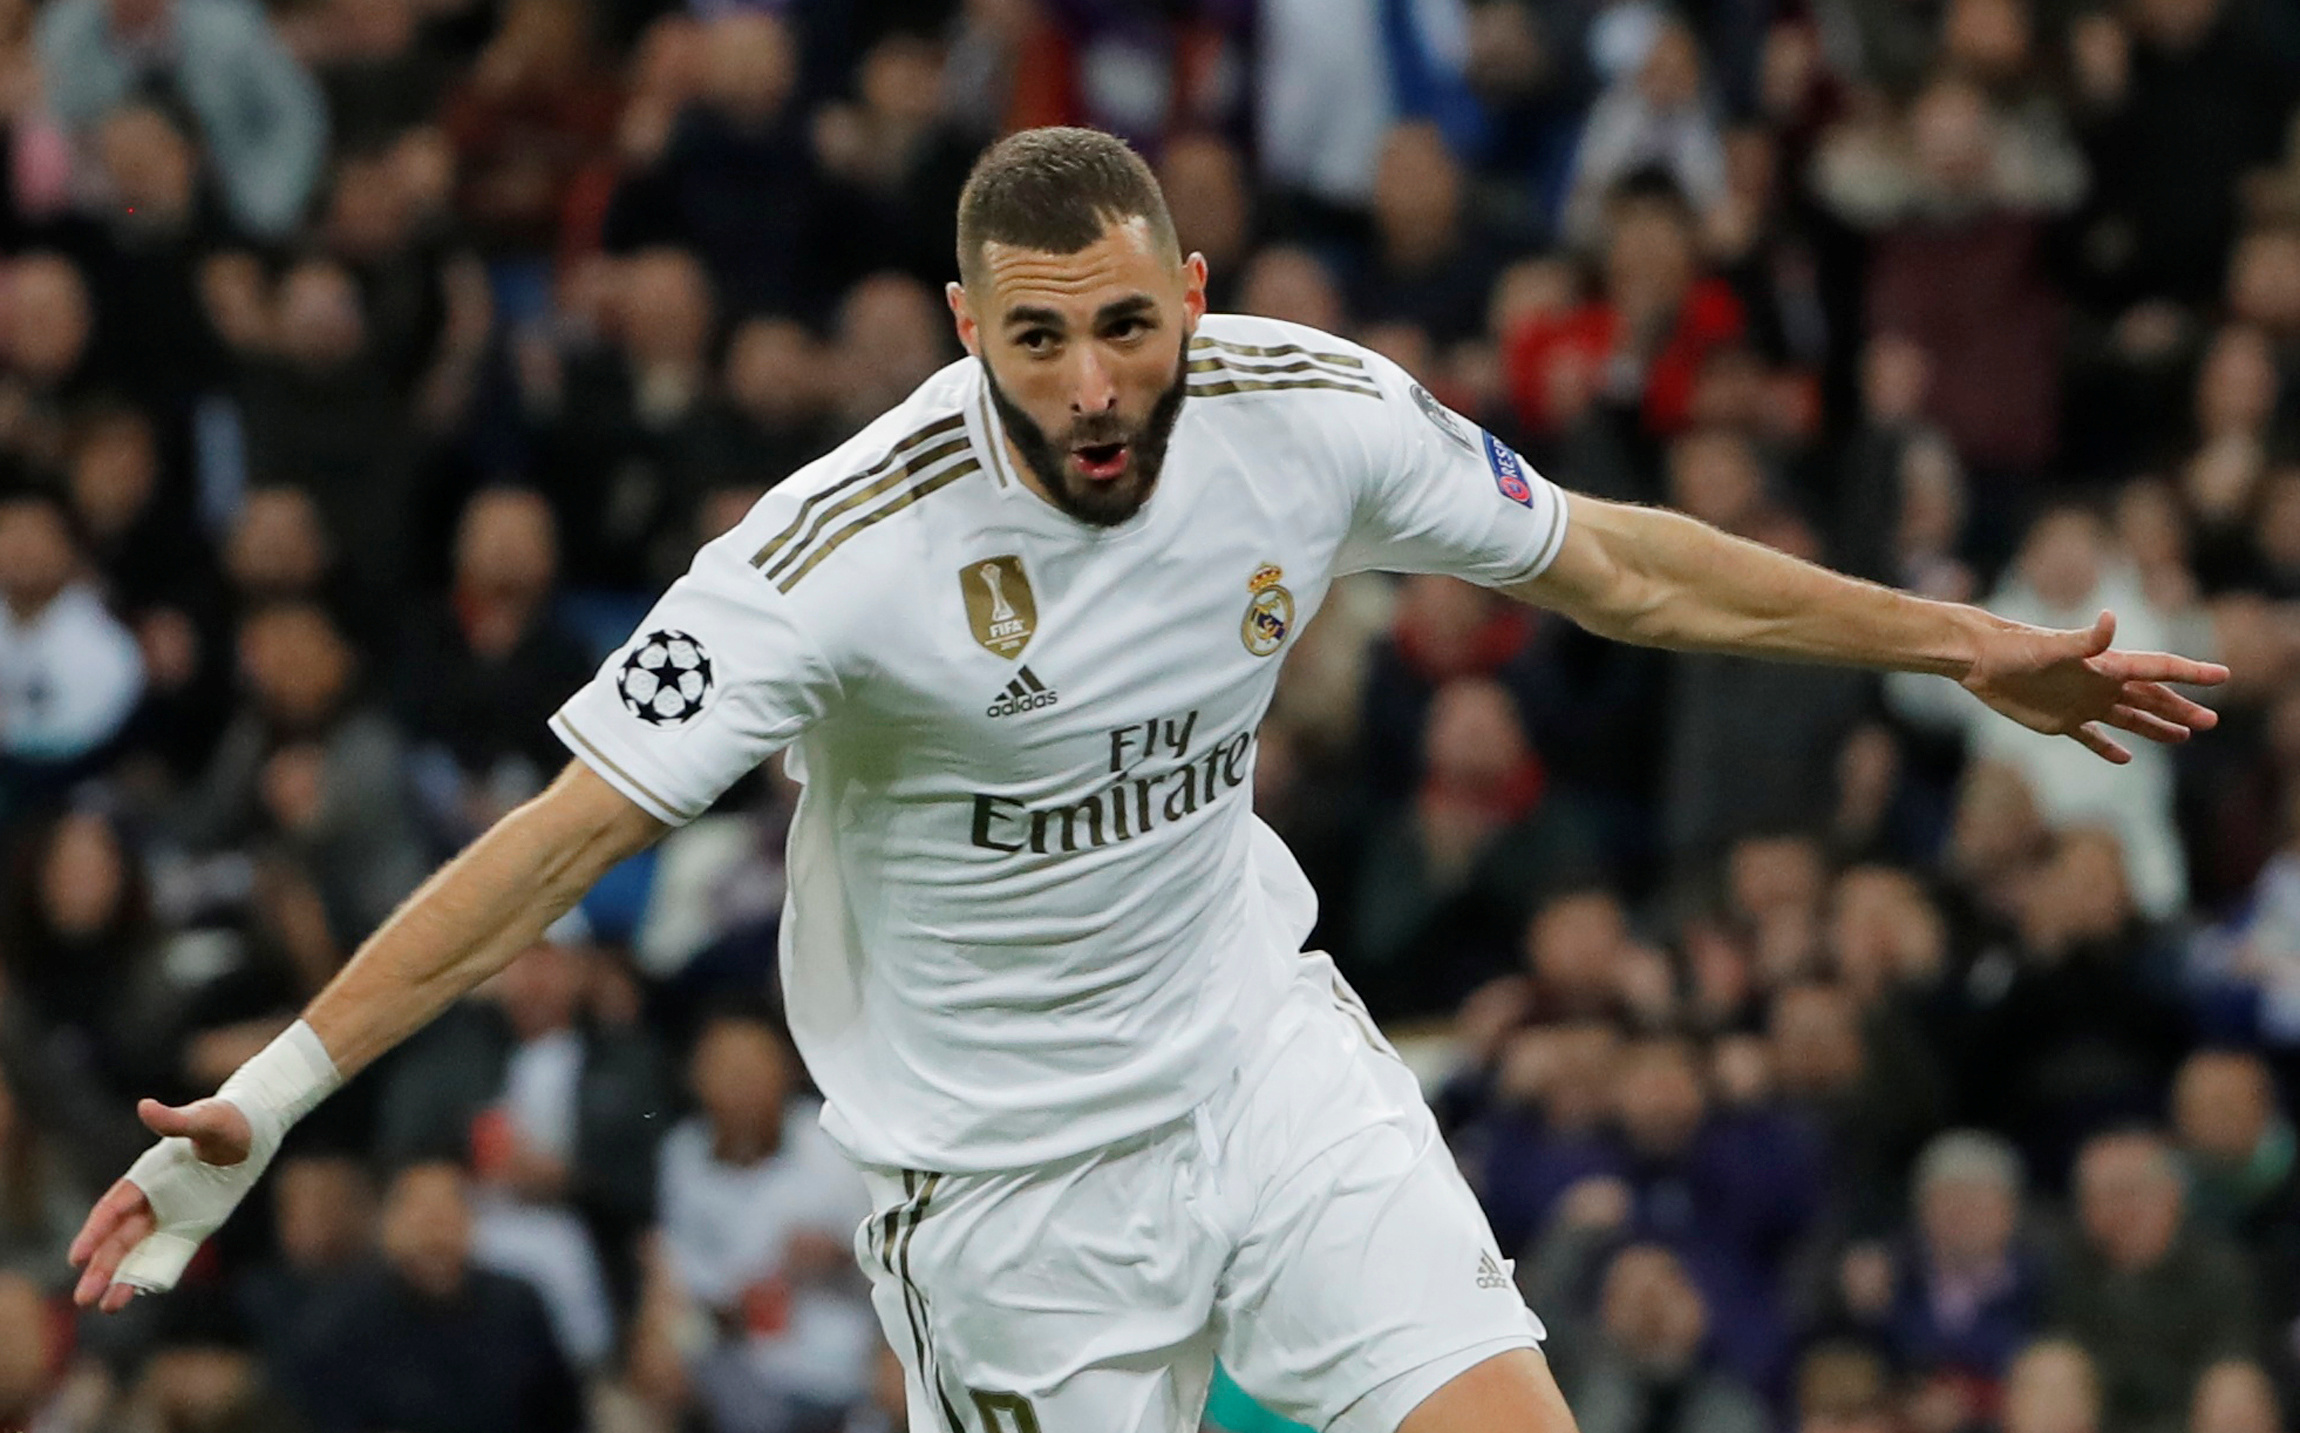 Benzema's backheel assist is one of the plays of this season - Zidane